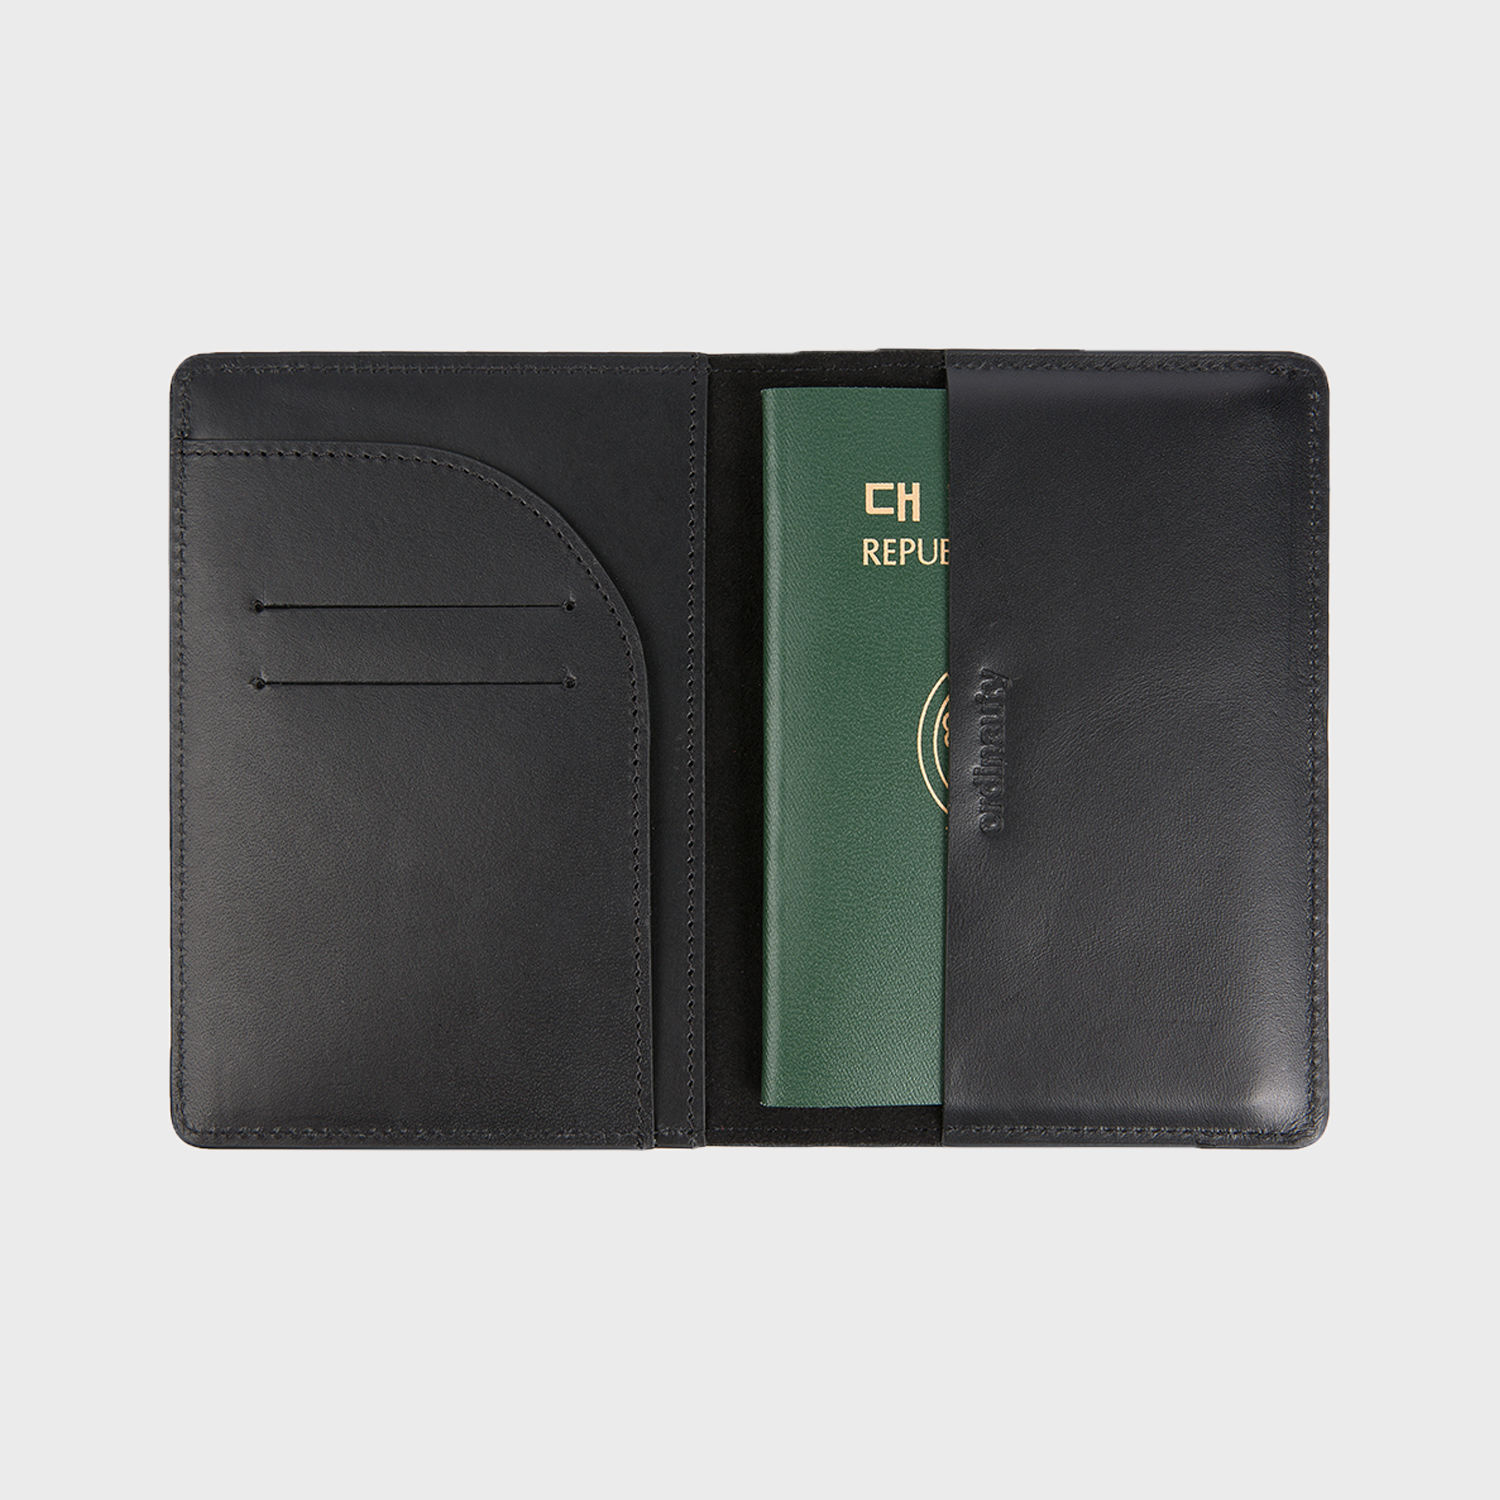 [오디너티]All in 1 PASSPORT BLACK (Buttero, Italy vegetable leather)